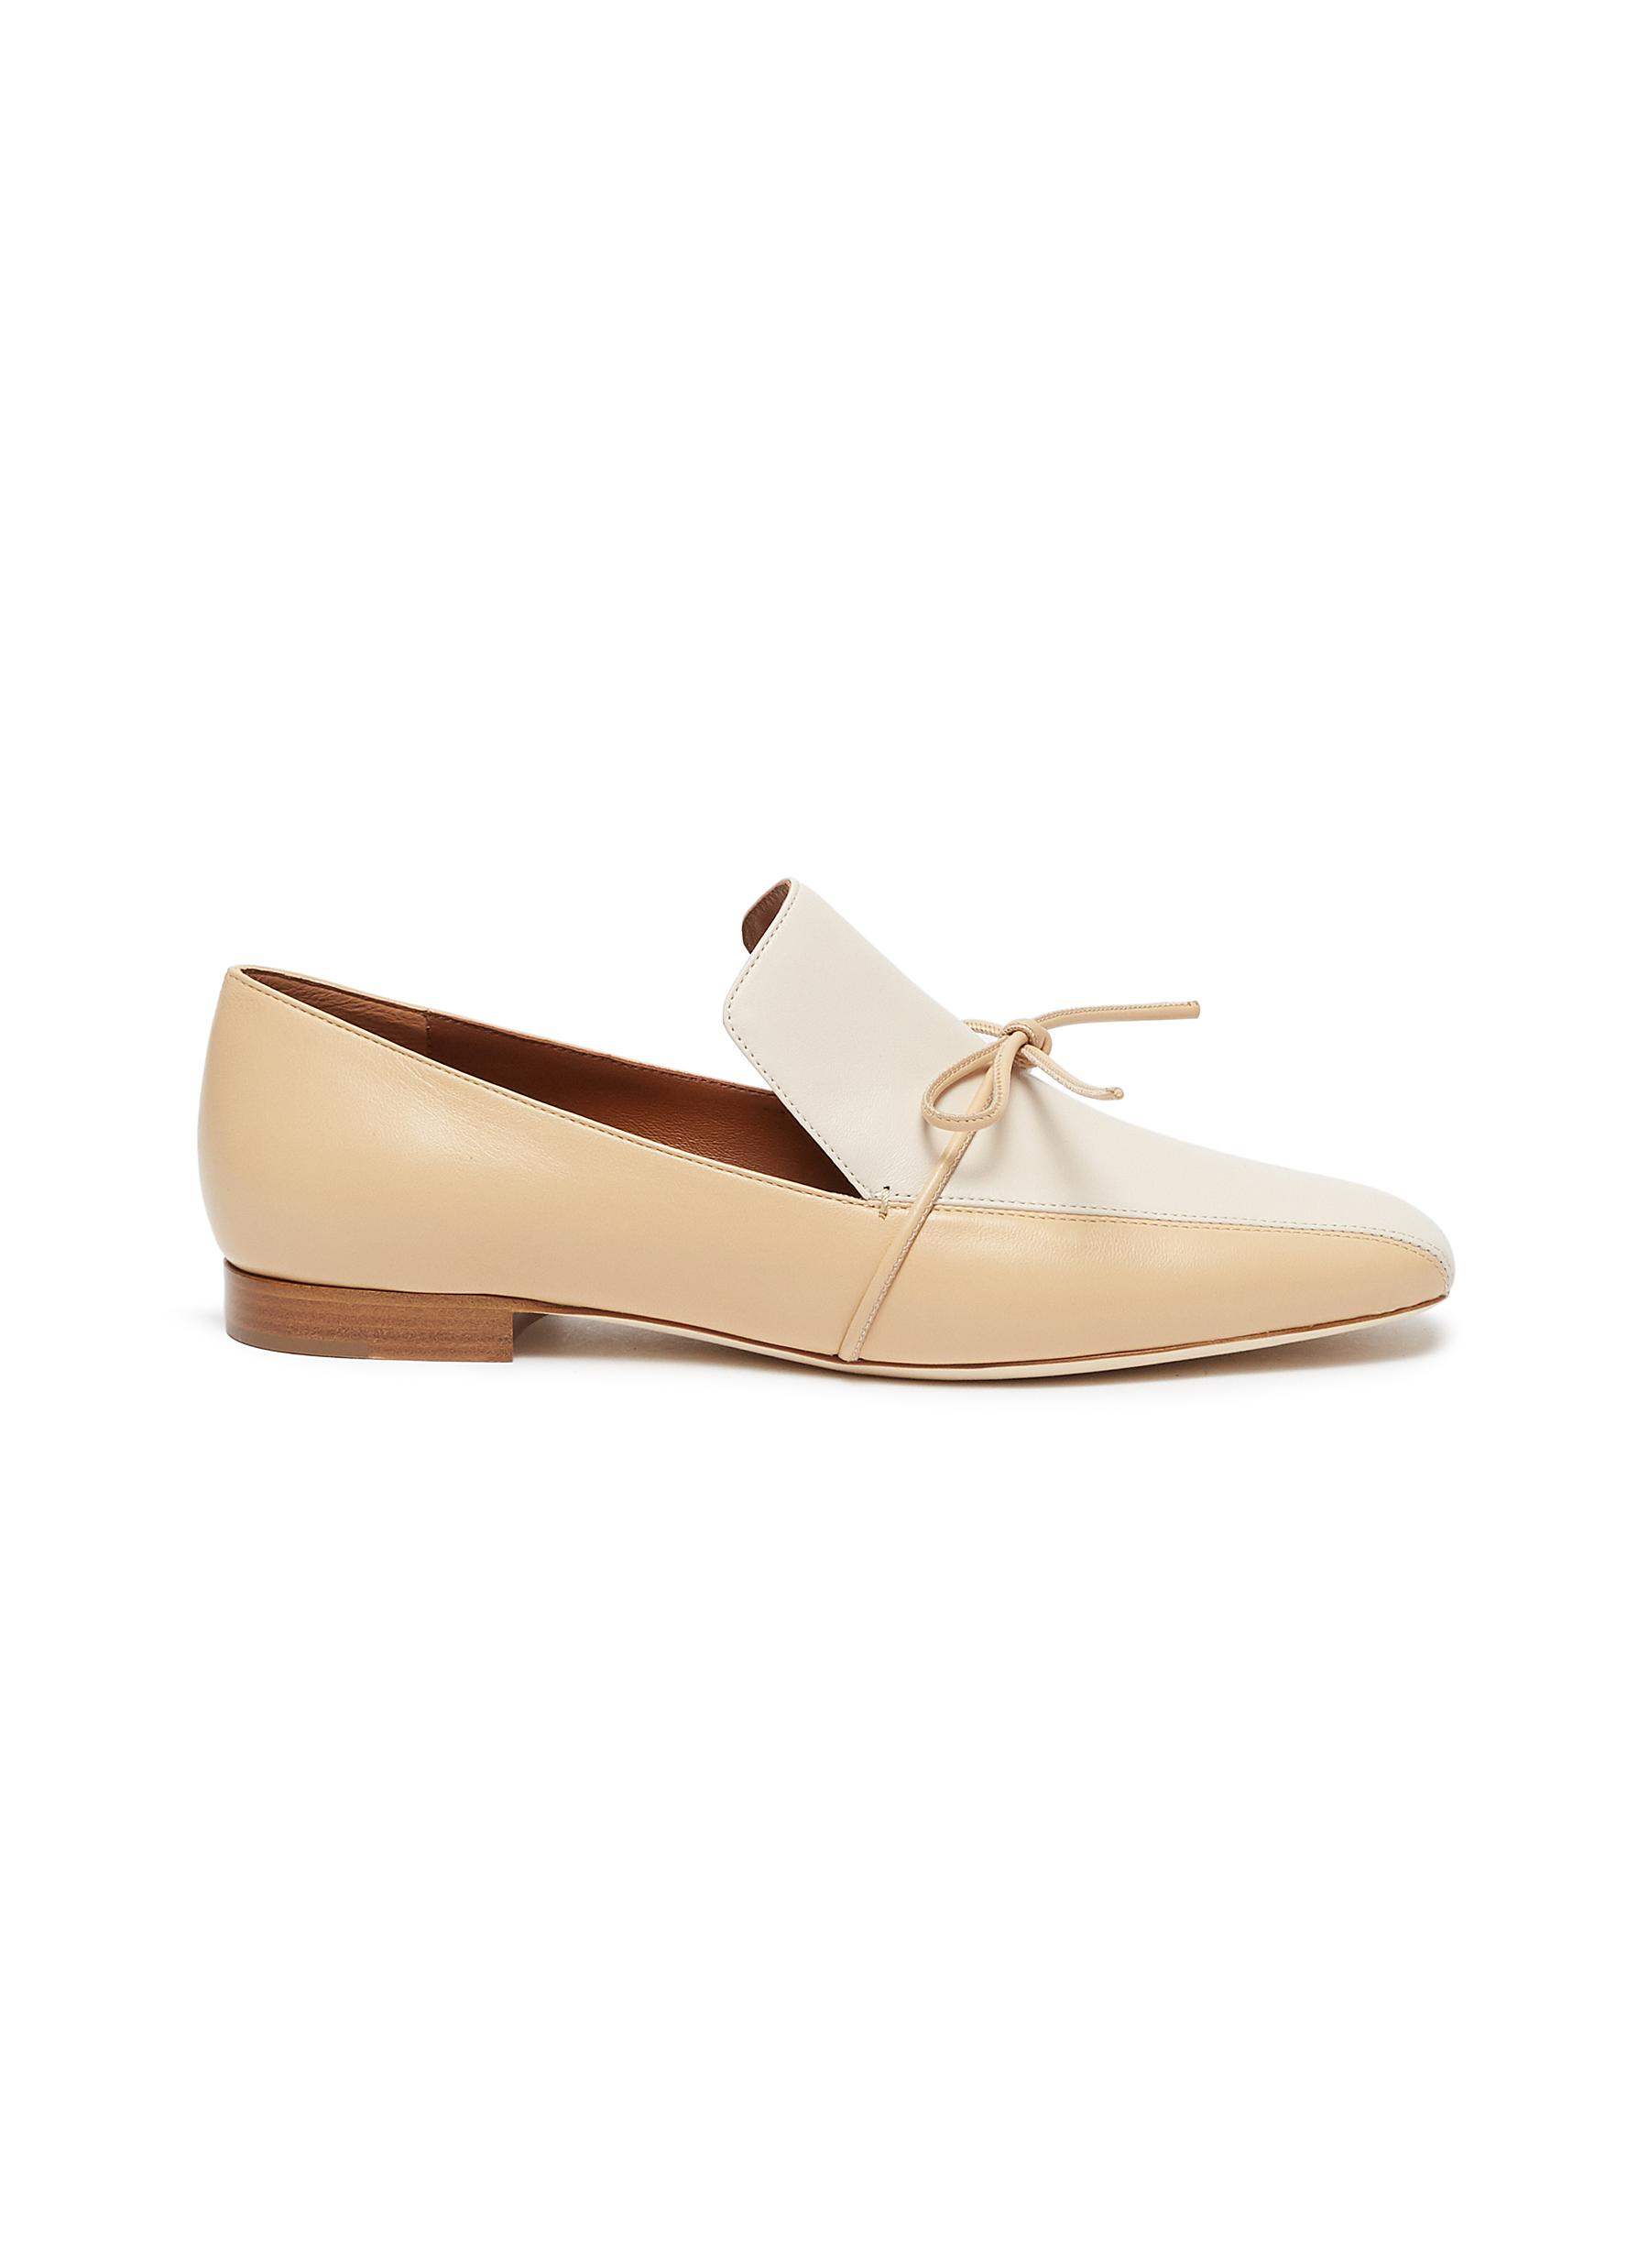 x Roksanda Celia bow tie colourblock leather loafers by Malone Souliers